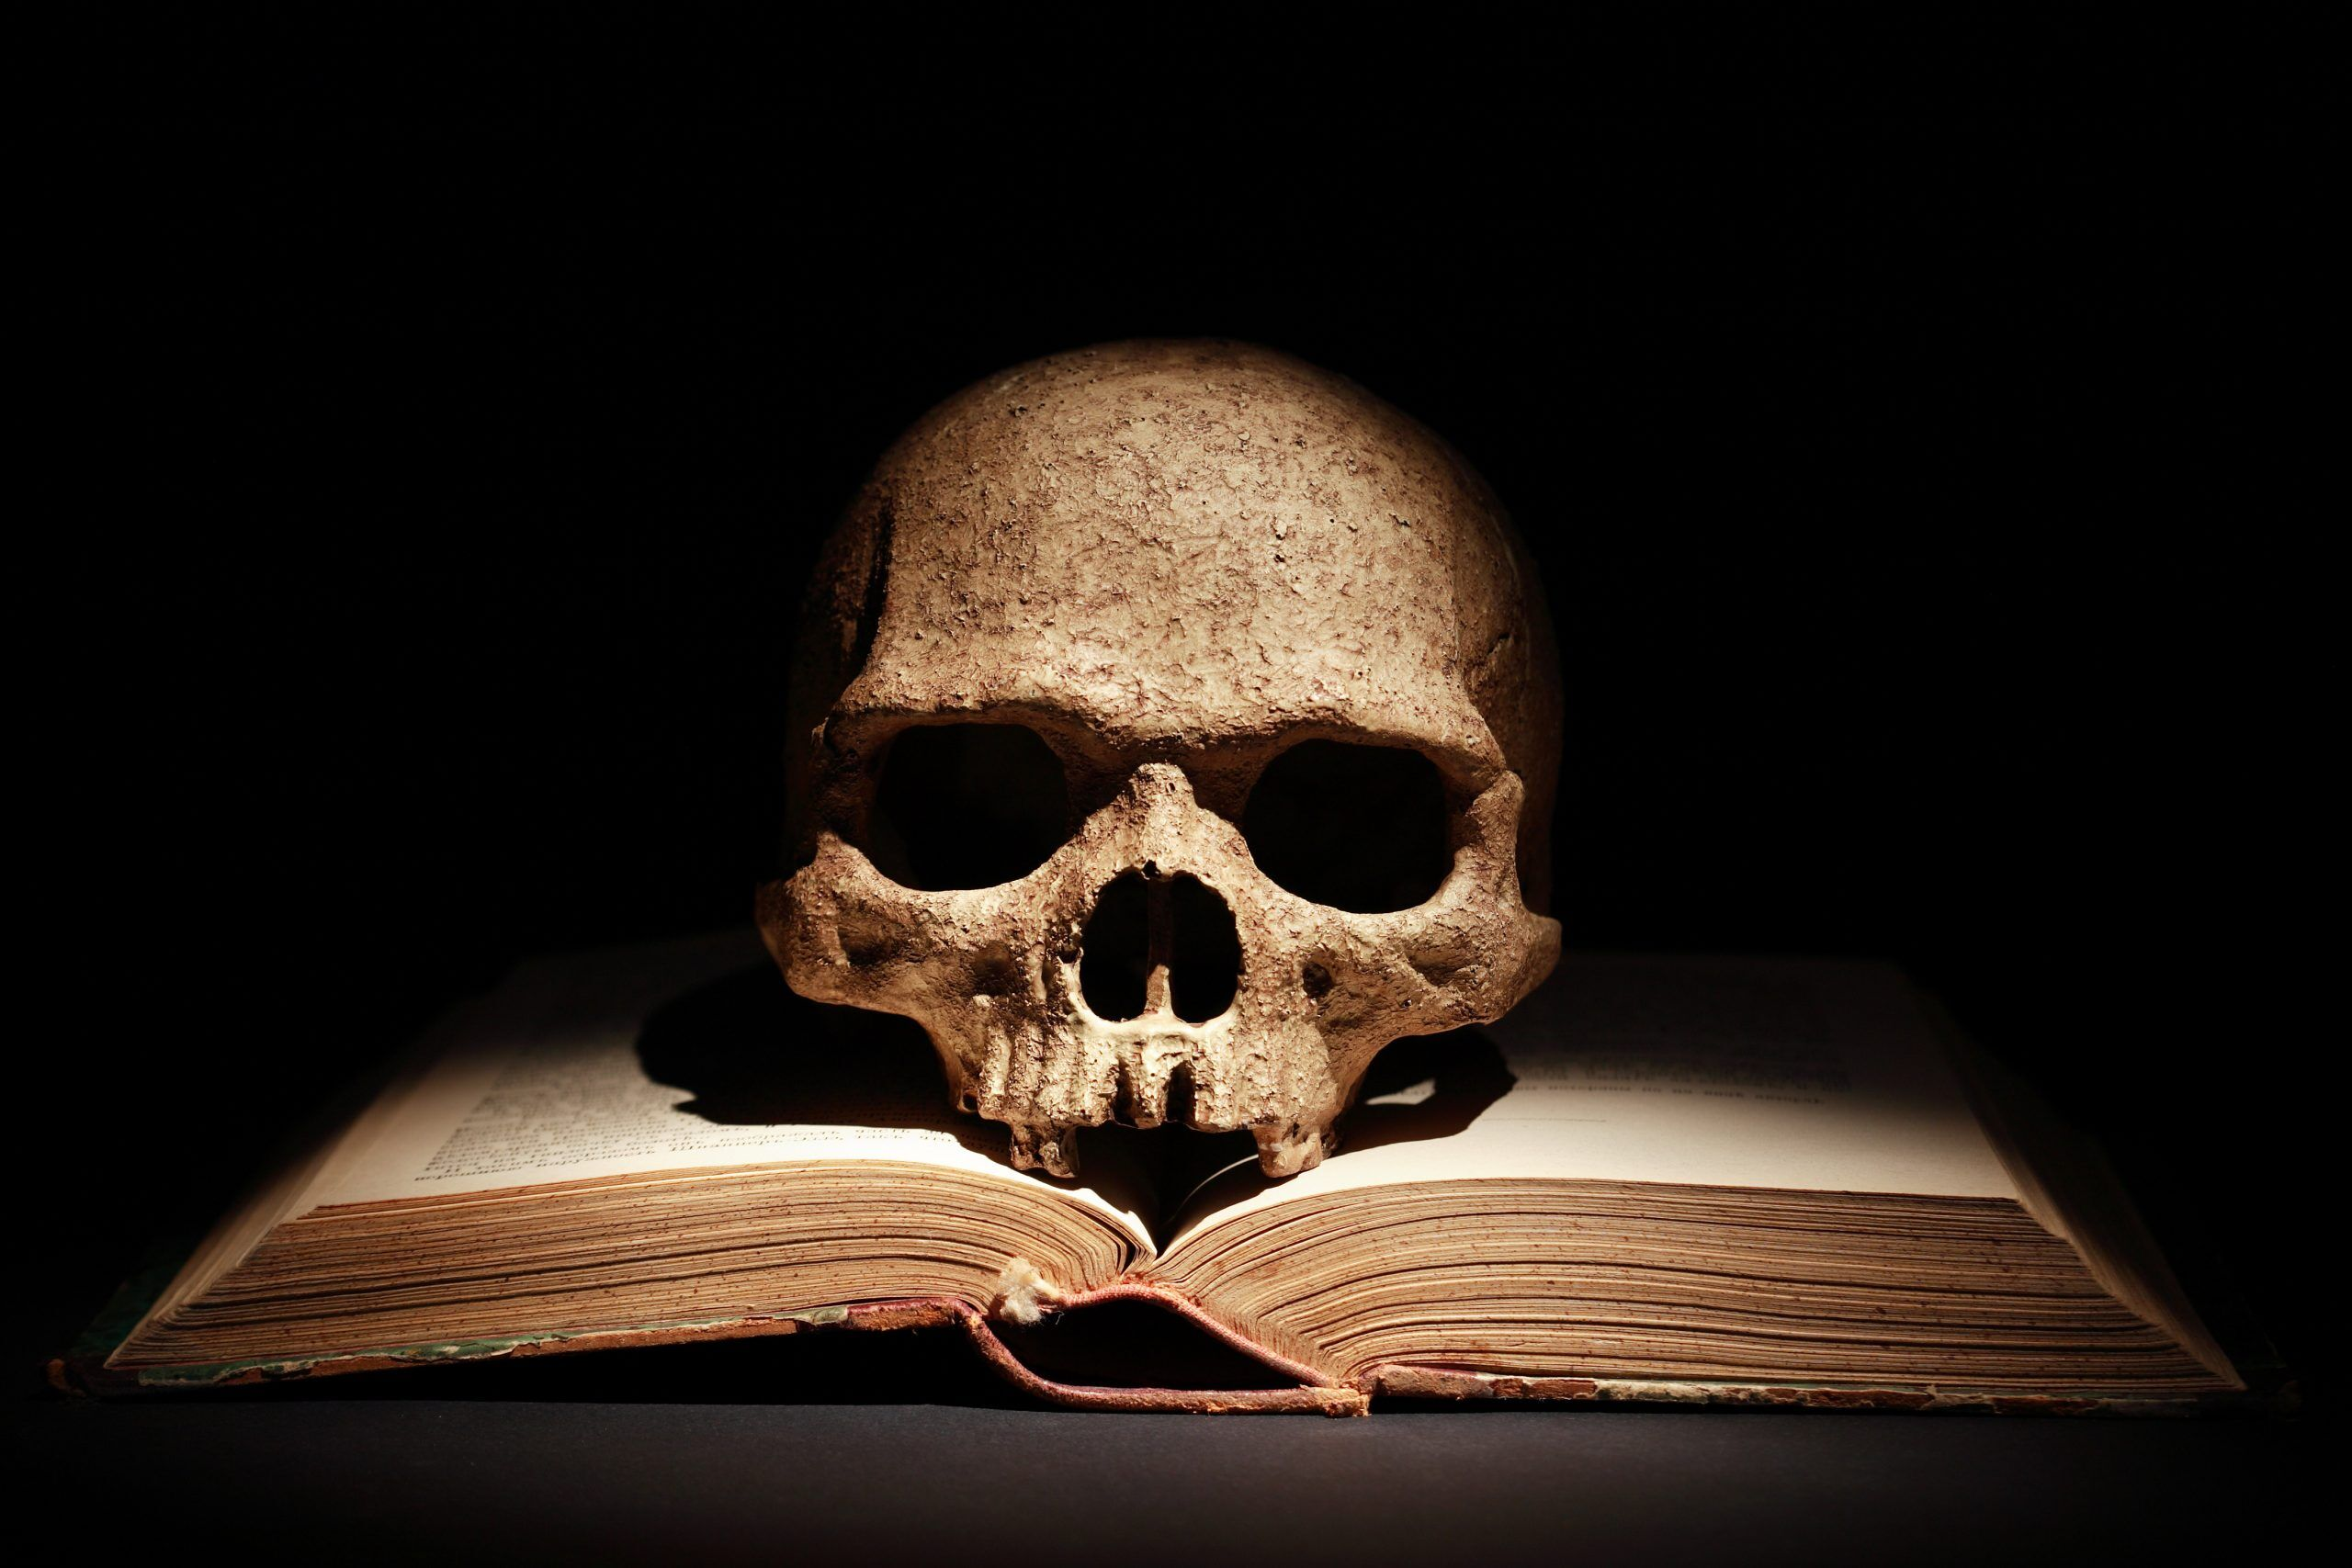 horror book with skull